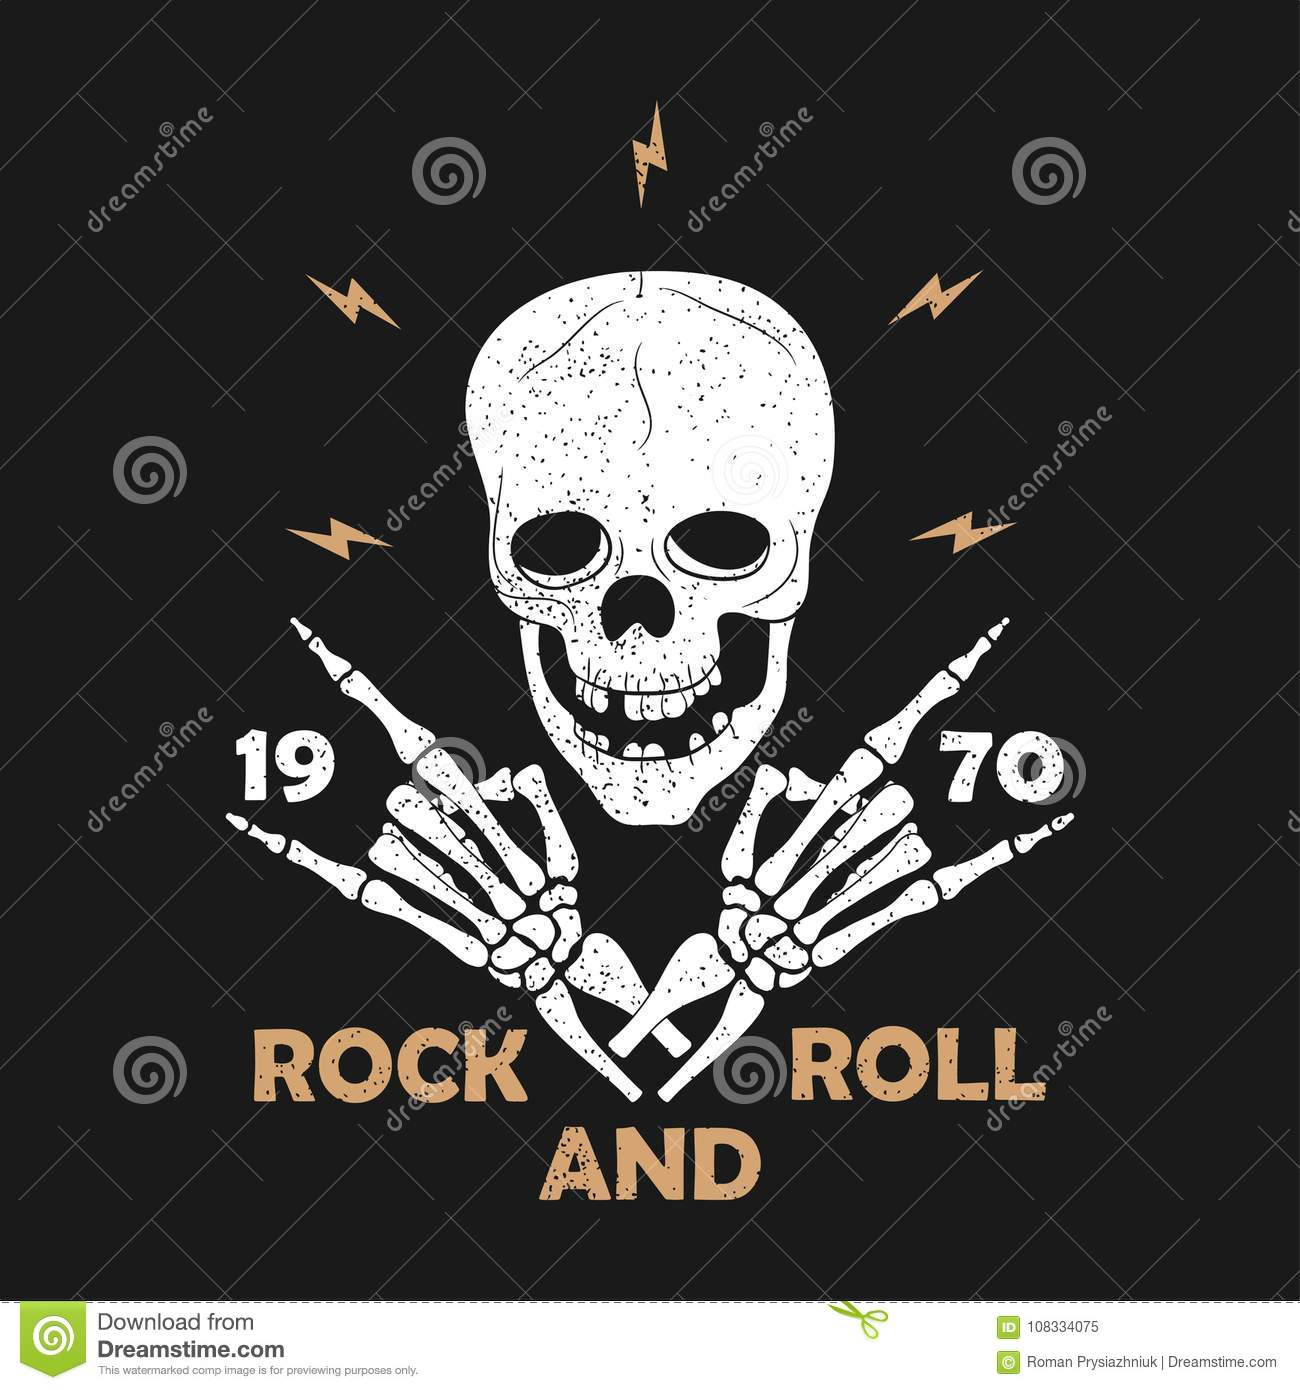 Rock-n-Roll music grunge typography for t-shirt. Clothes design with skeleton hands and skull. Graphics for clothes print, apparel